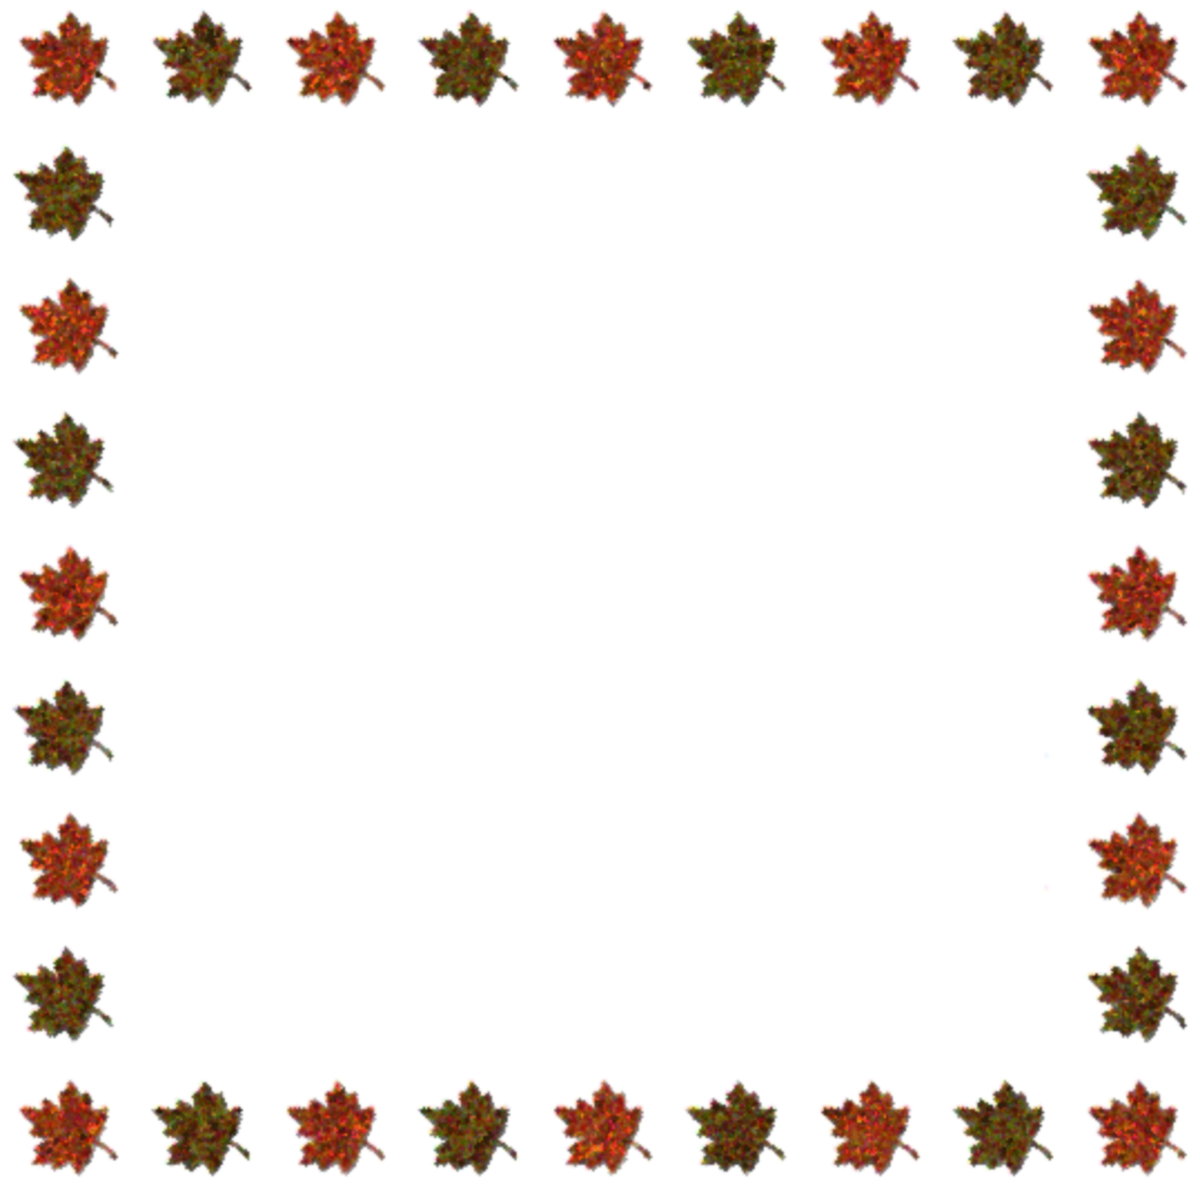 Fall Leaves Clpart Frame Free